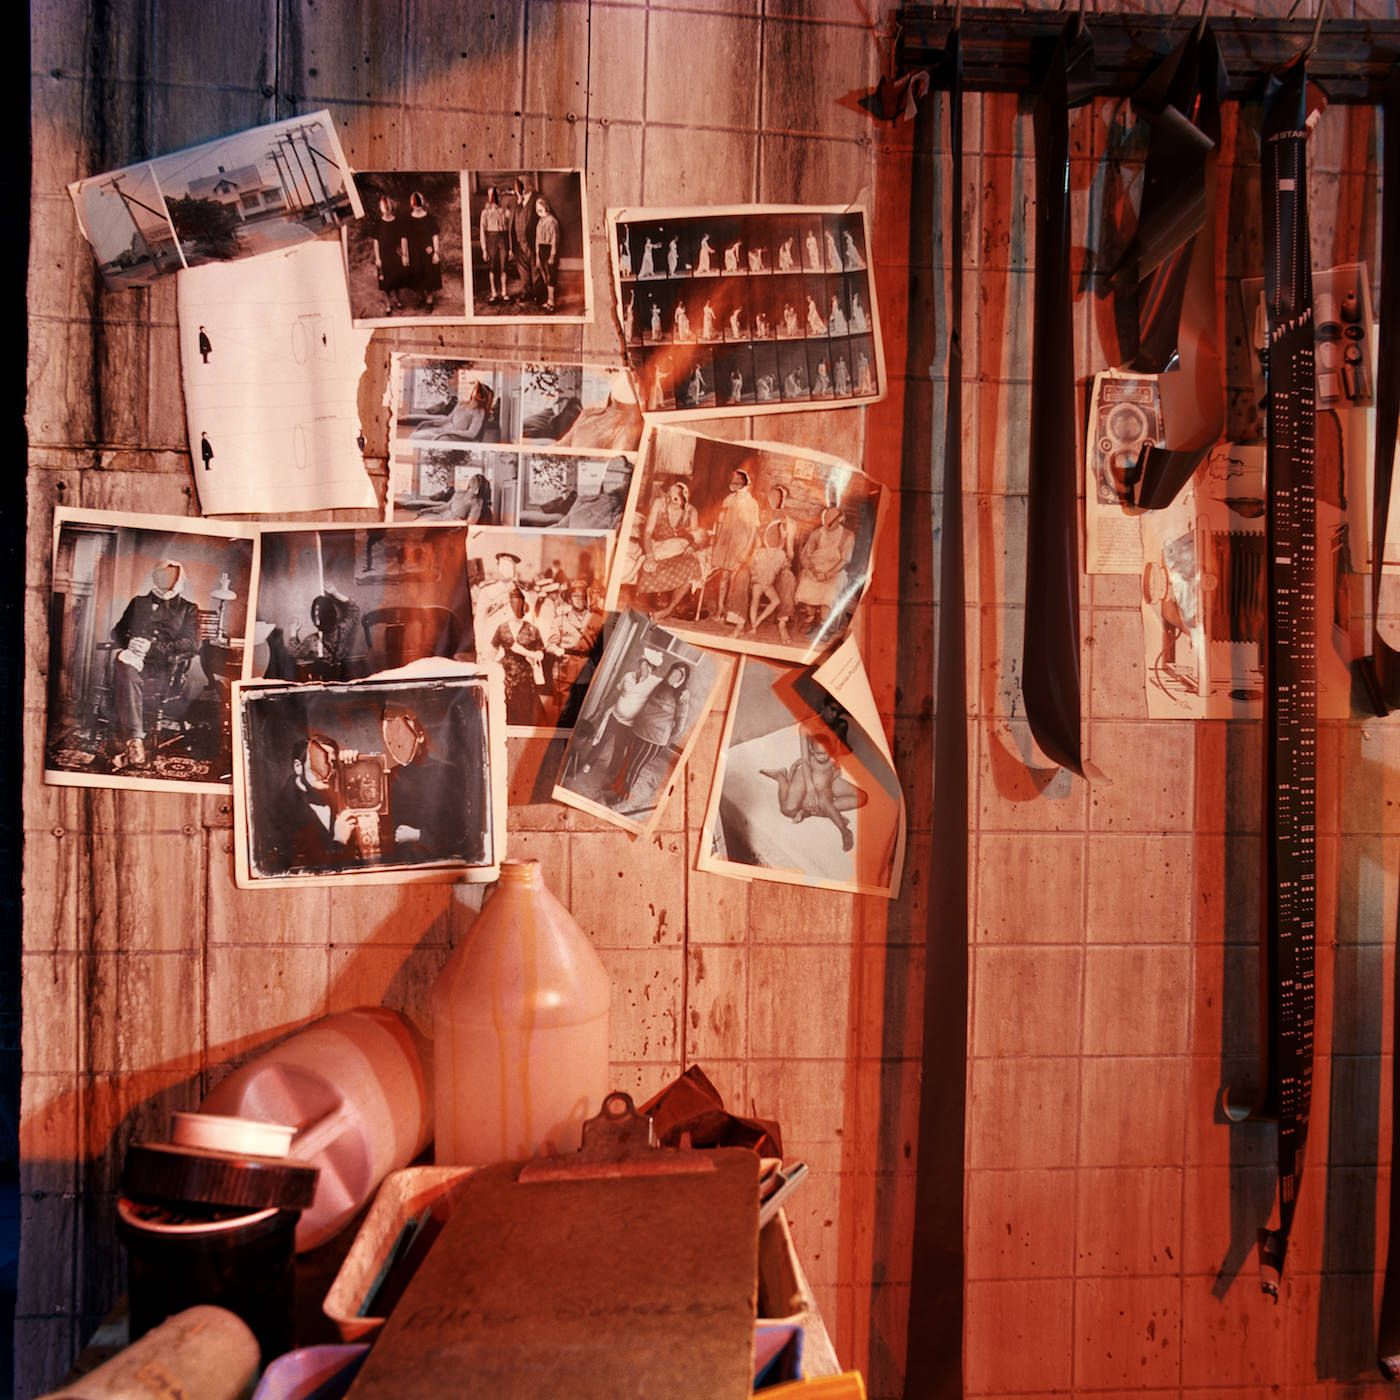 """Misty Keasler, """"Darkroom, Headless Horseman Haunted House, Ulster Park, NY"""" (2016), archival pigment print, 30 × 30 inches (courtesy the artist and the Public Trust)"""